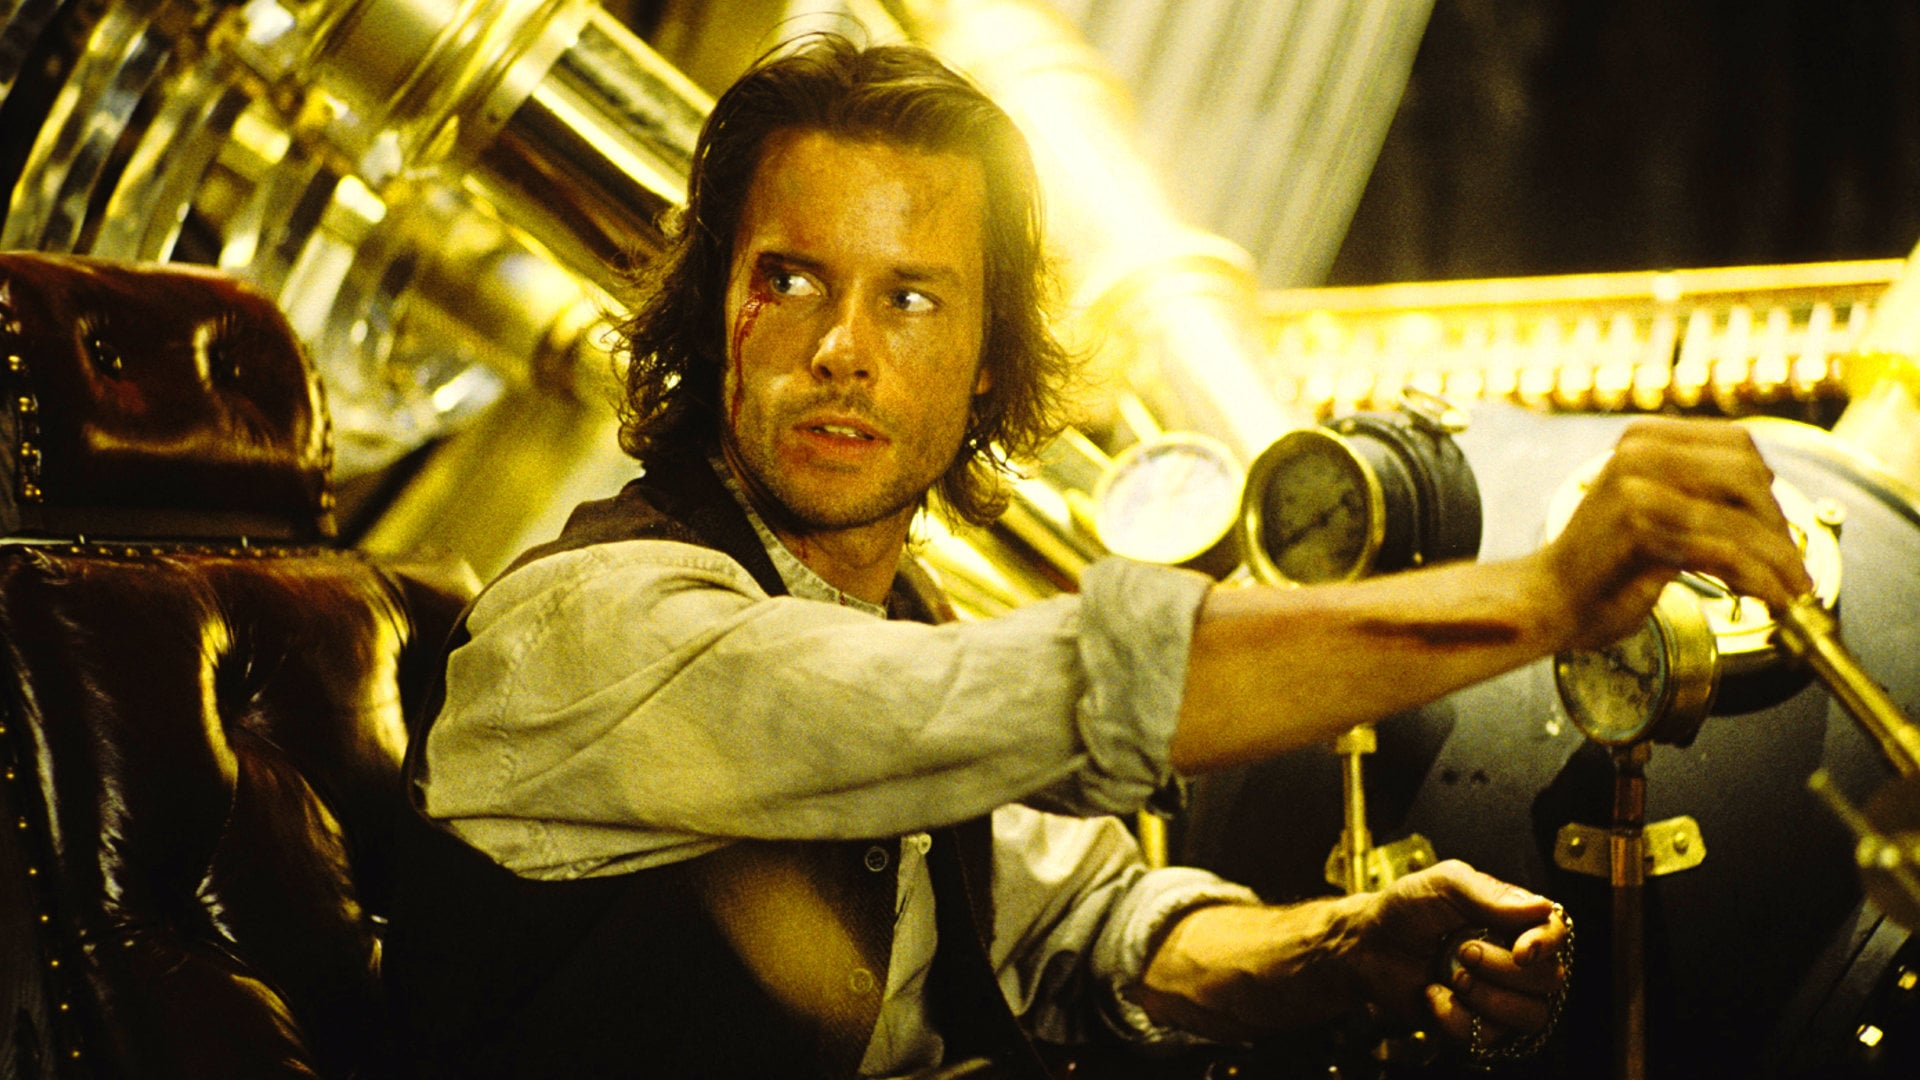 Guy Pearce as Dr Alexander Hartdegen at the controls of in The Time Machine (2002)